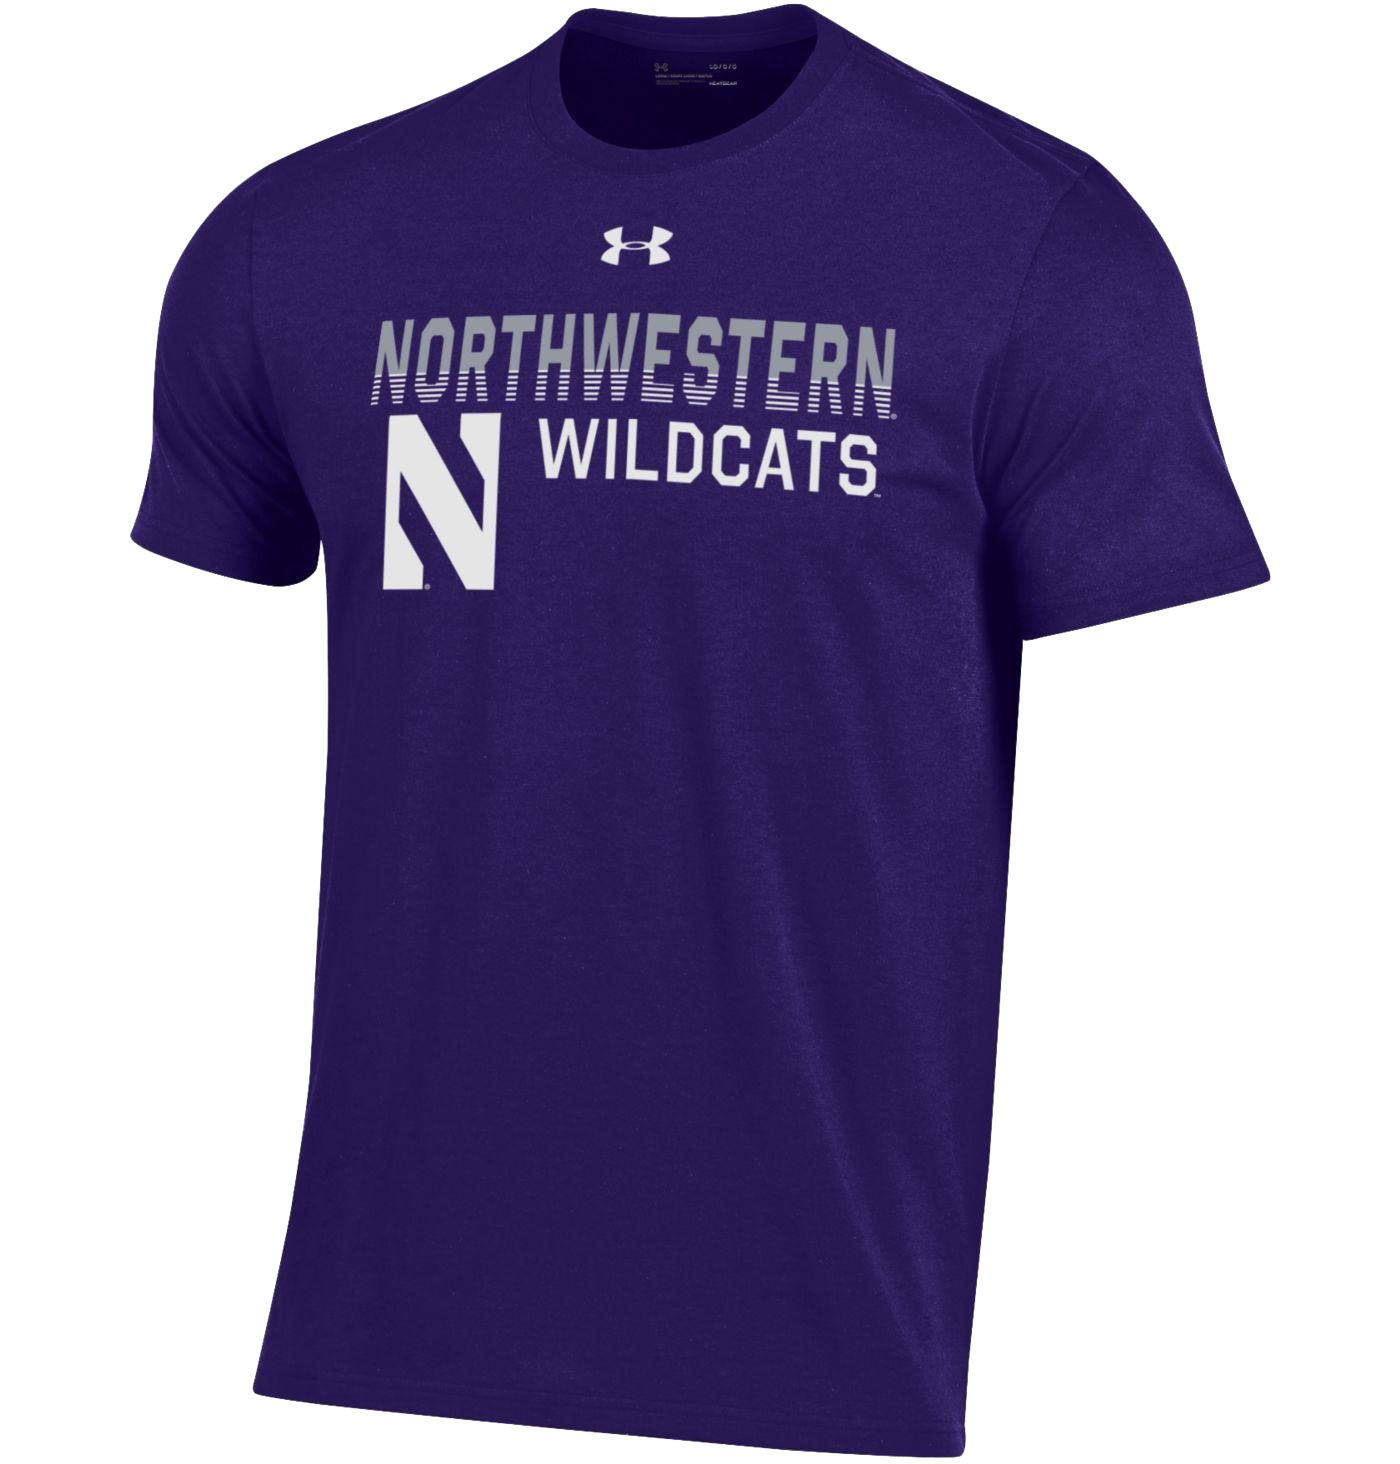 Under Armour Men's Northwestern Wildcats Purple Performance Cotton T-Shirt